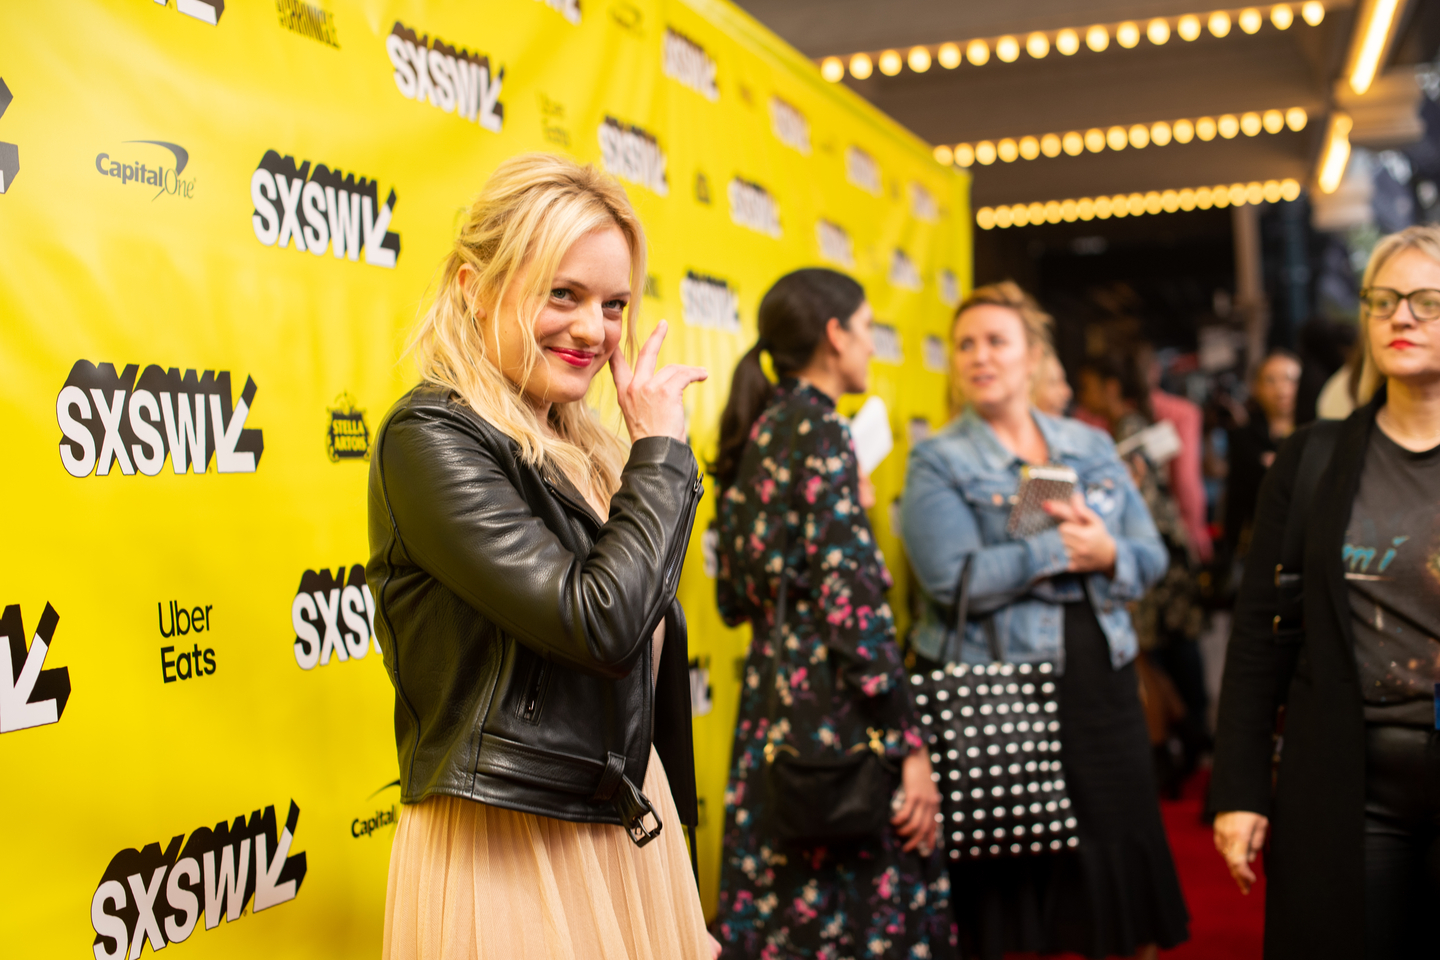 Elisabeth Moss attends the Us world premiere at the Paramount Theatre.